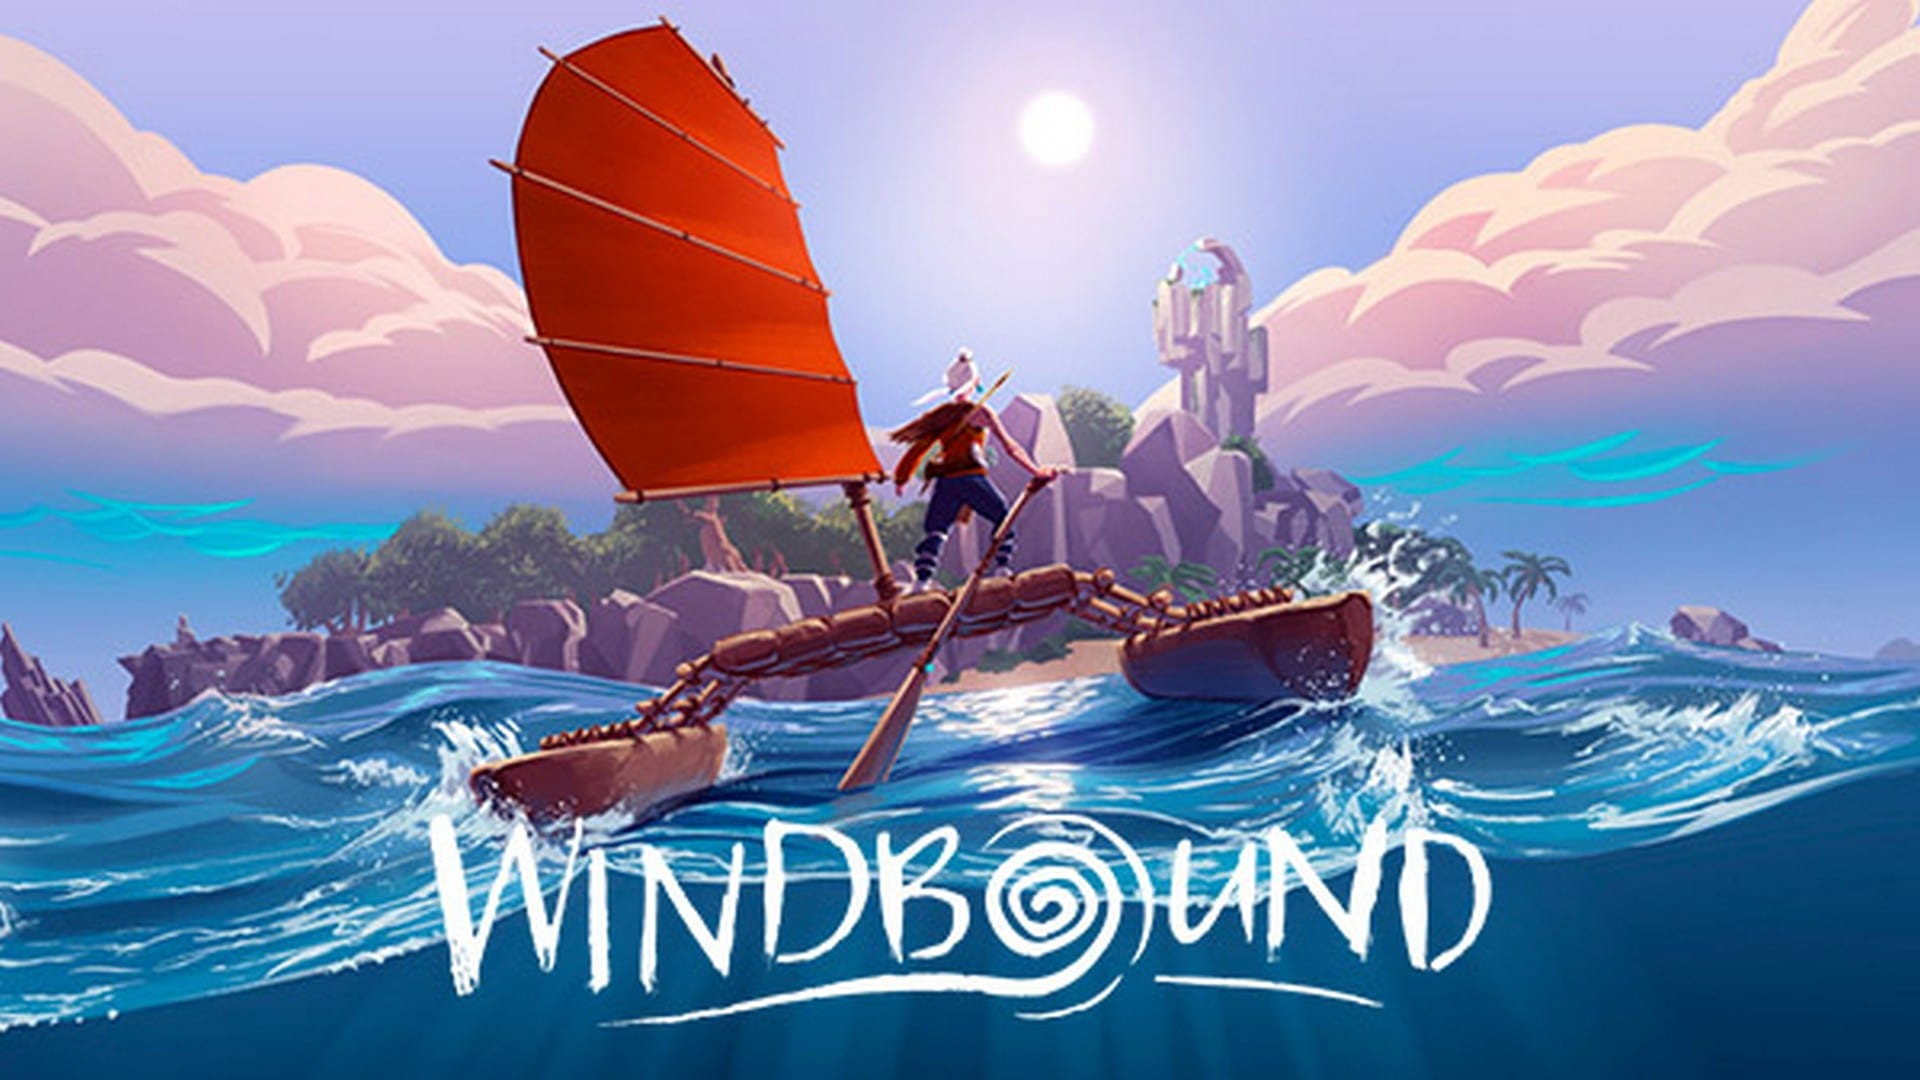 Free Windbound Content Available Now